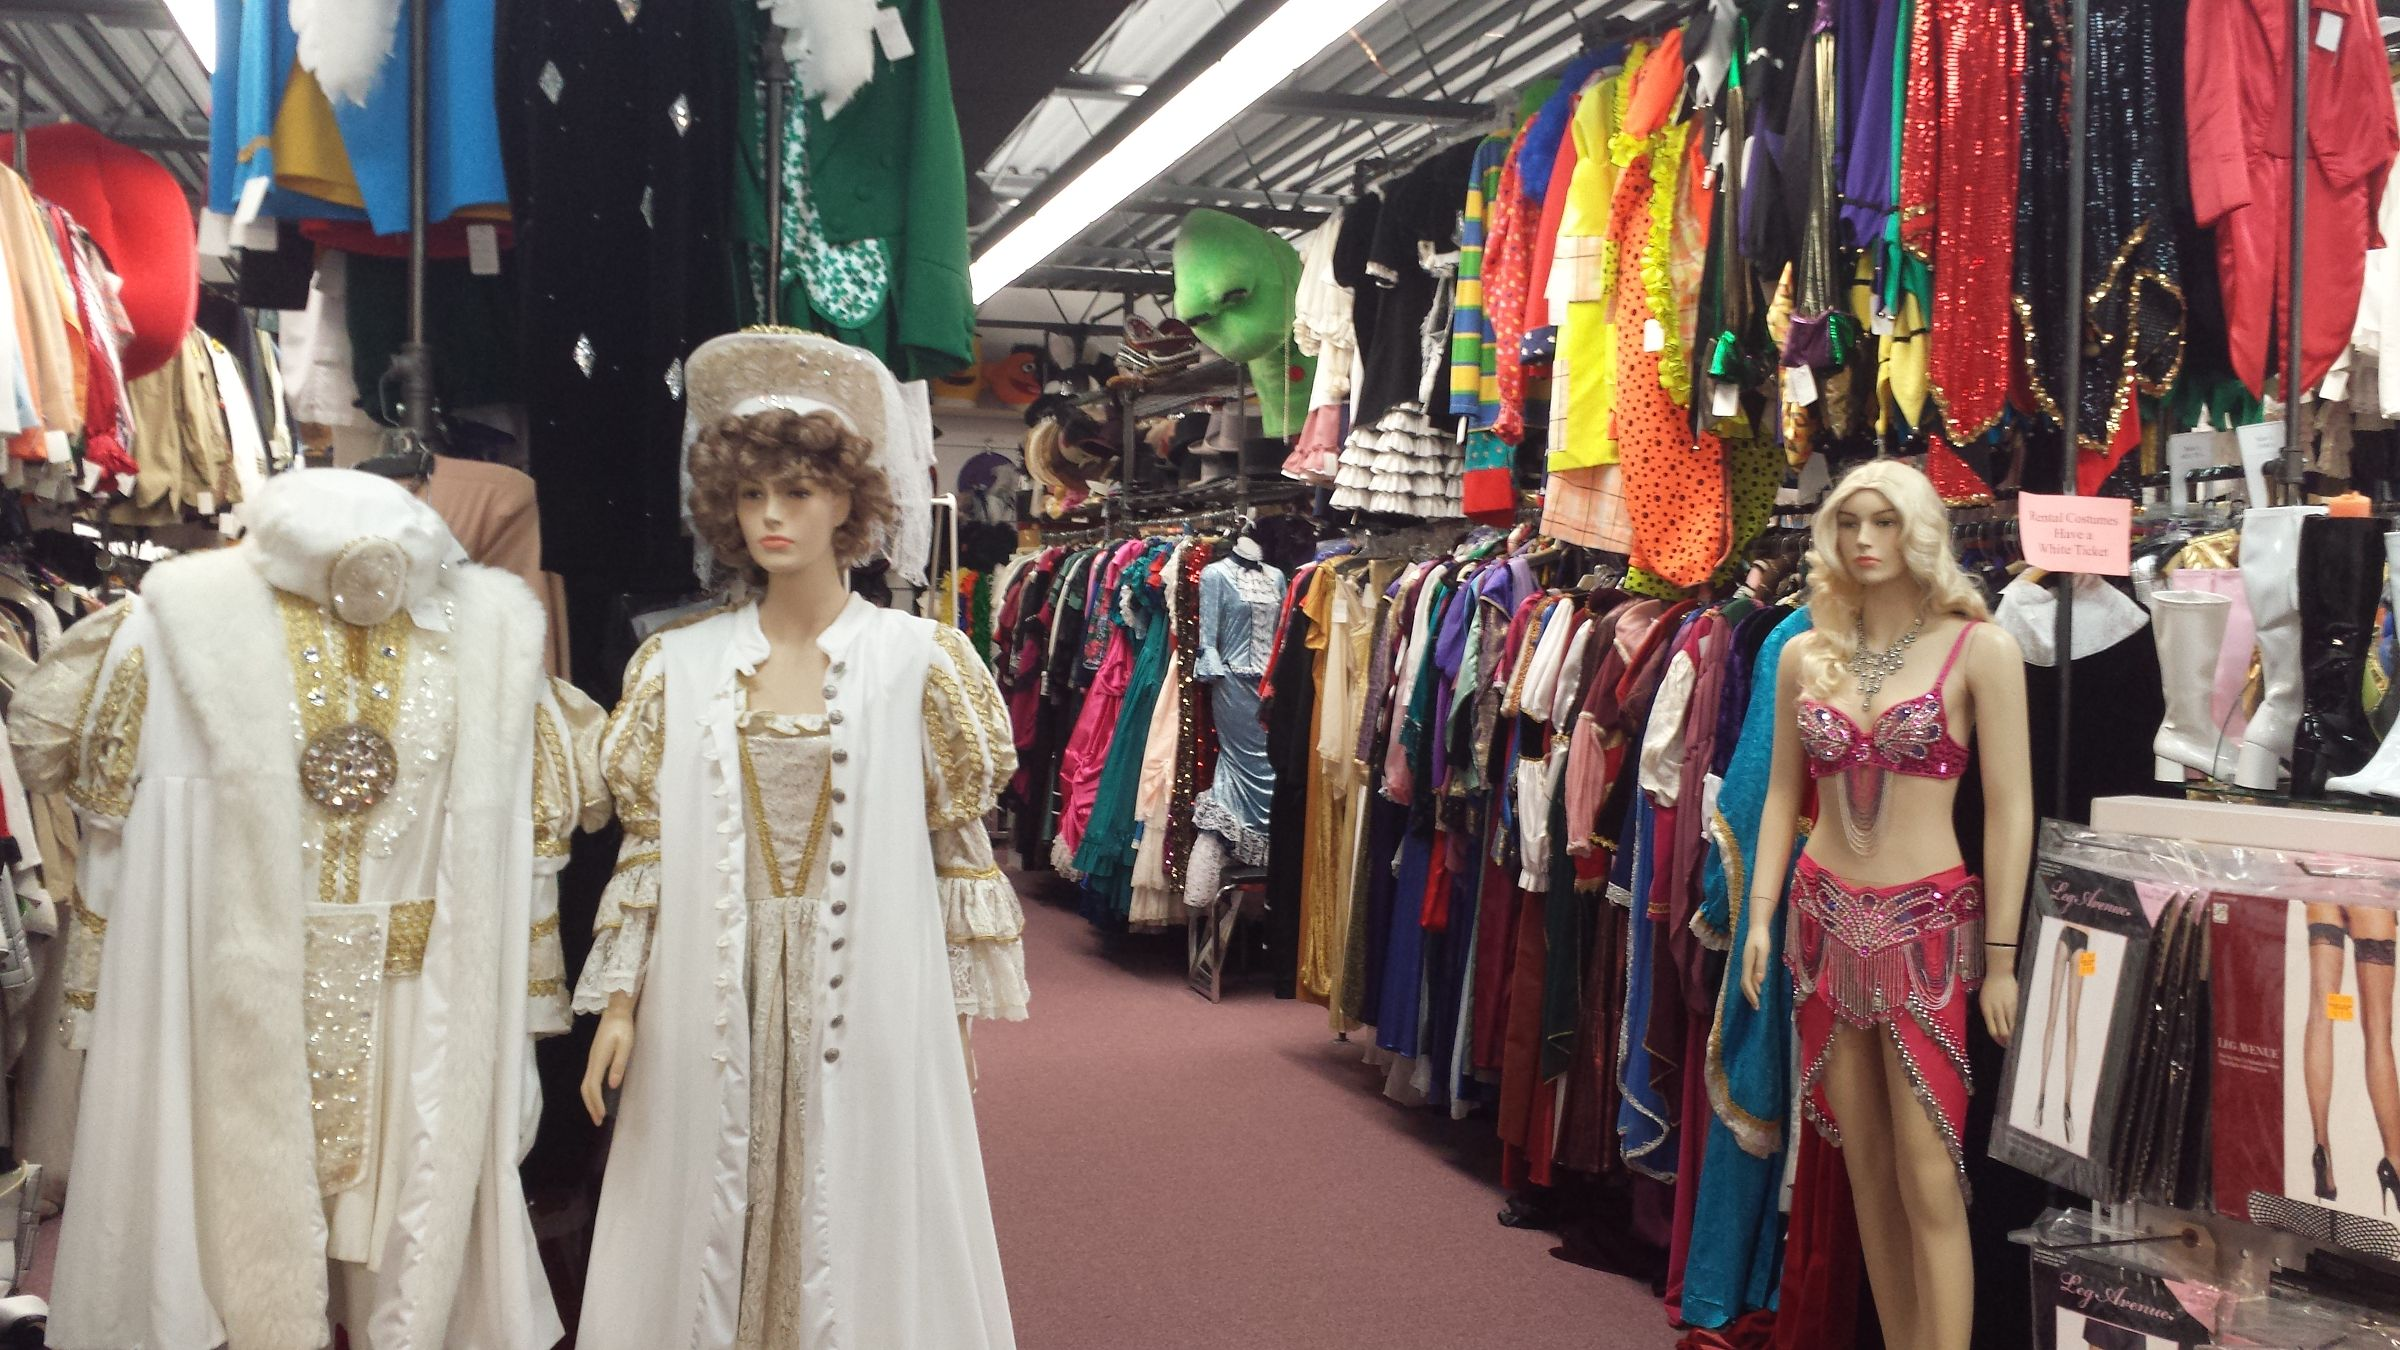 Rental costumes for adults